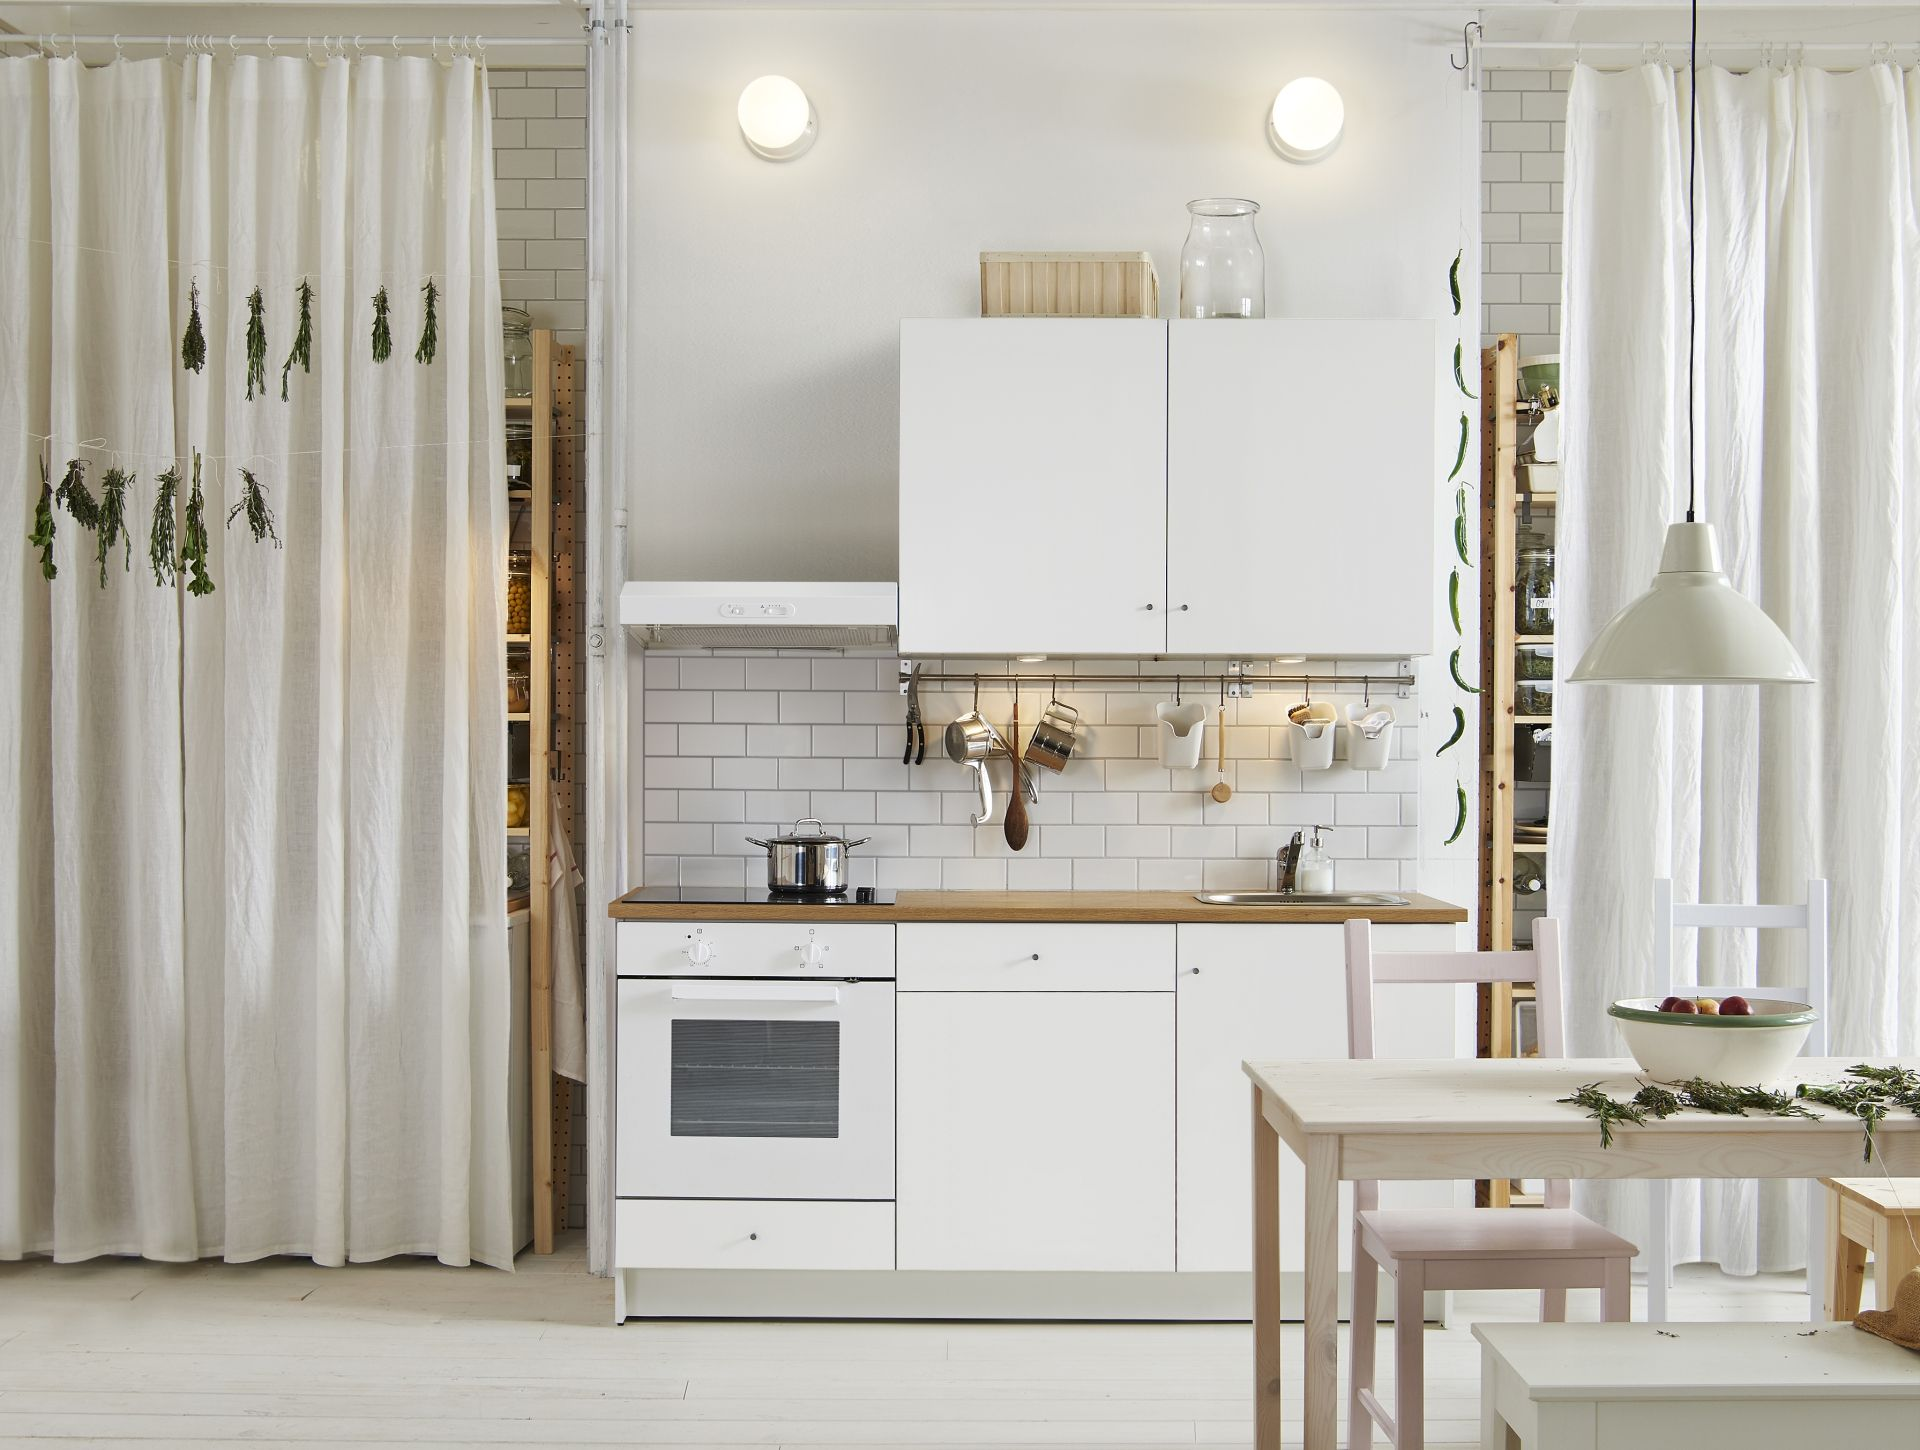 knoxhult keuken wit keukens ikea keuken keuken en ikea. Black Bedroom Furniture Sets. Home Design Ideas